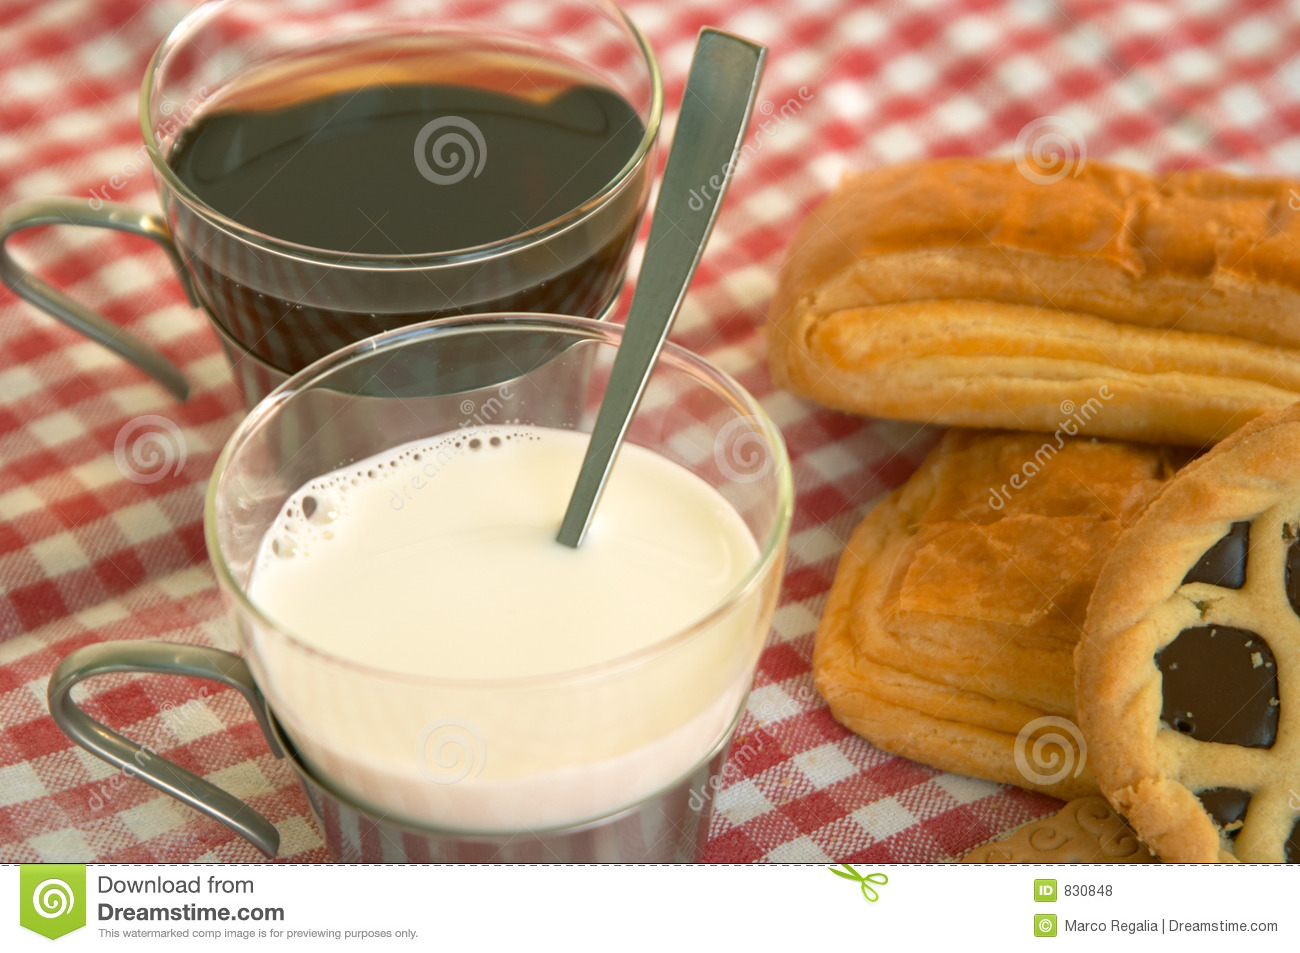 Cereal biscuits, chocolate cake, and a cup of milk